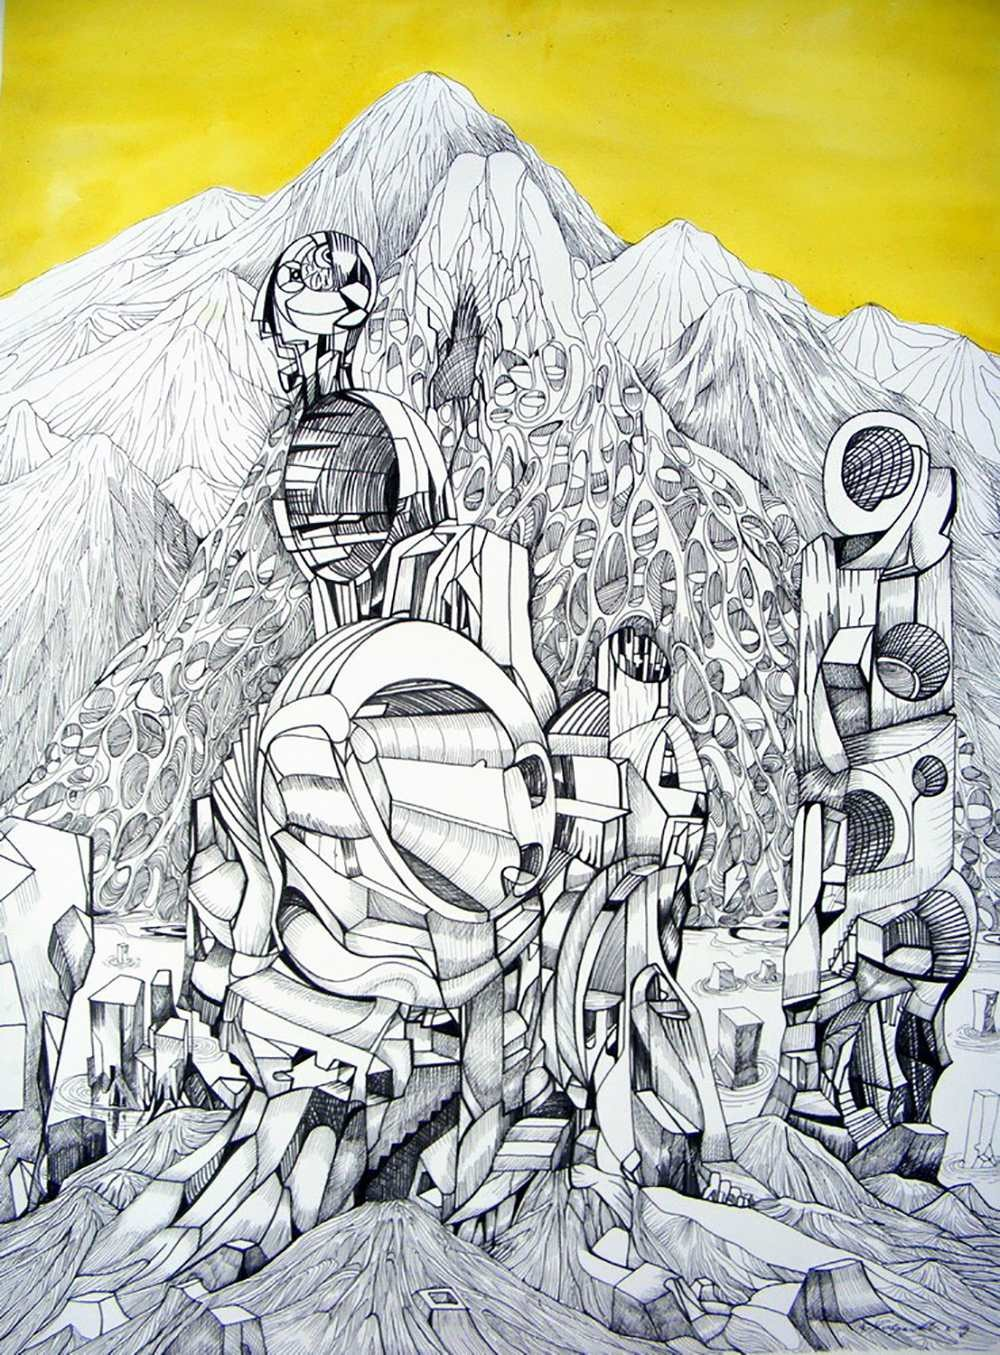 Lost civilisation, ink and yellow acrylic on paper by Marko Gavrilovic